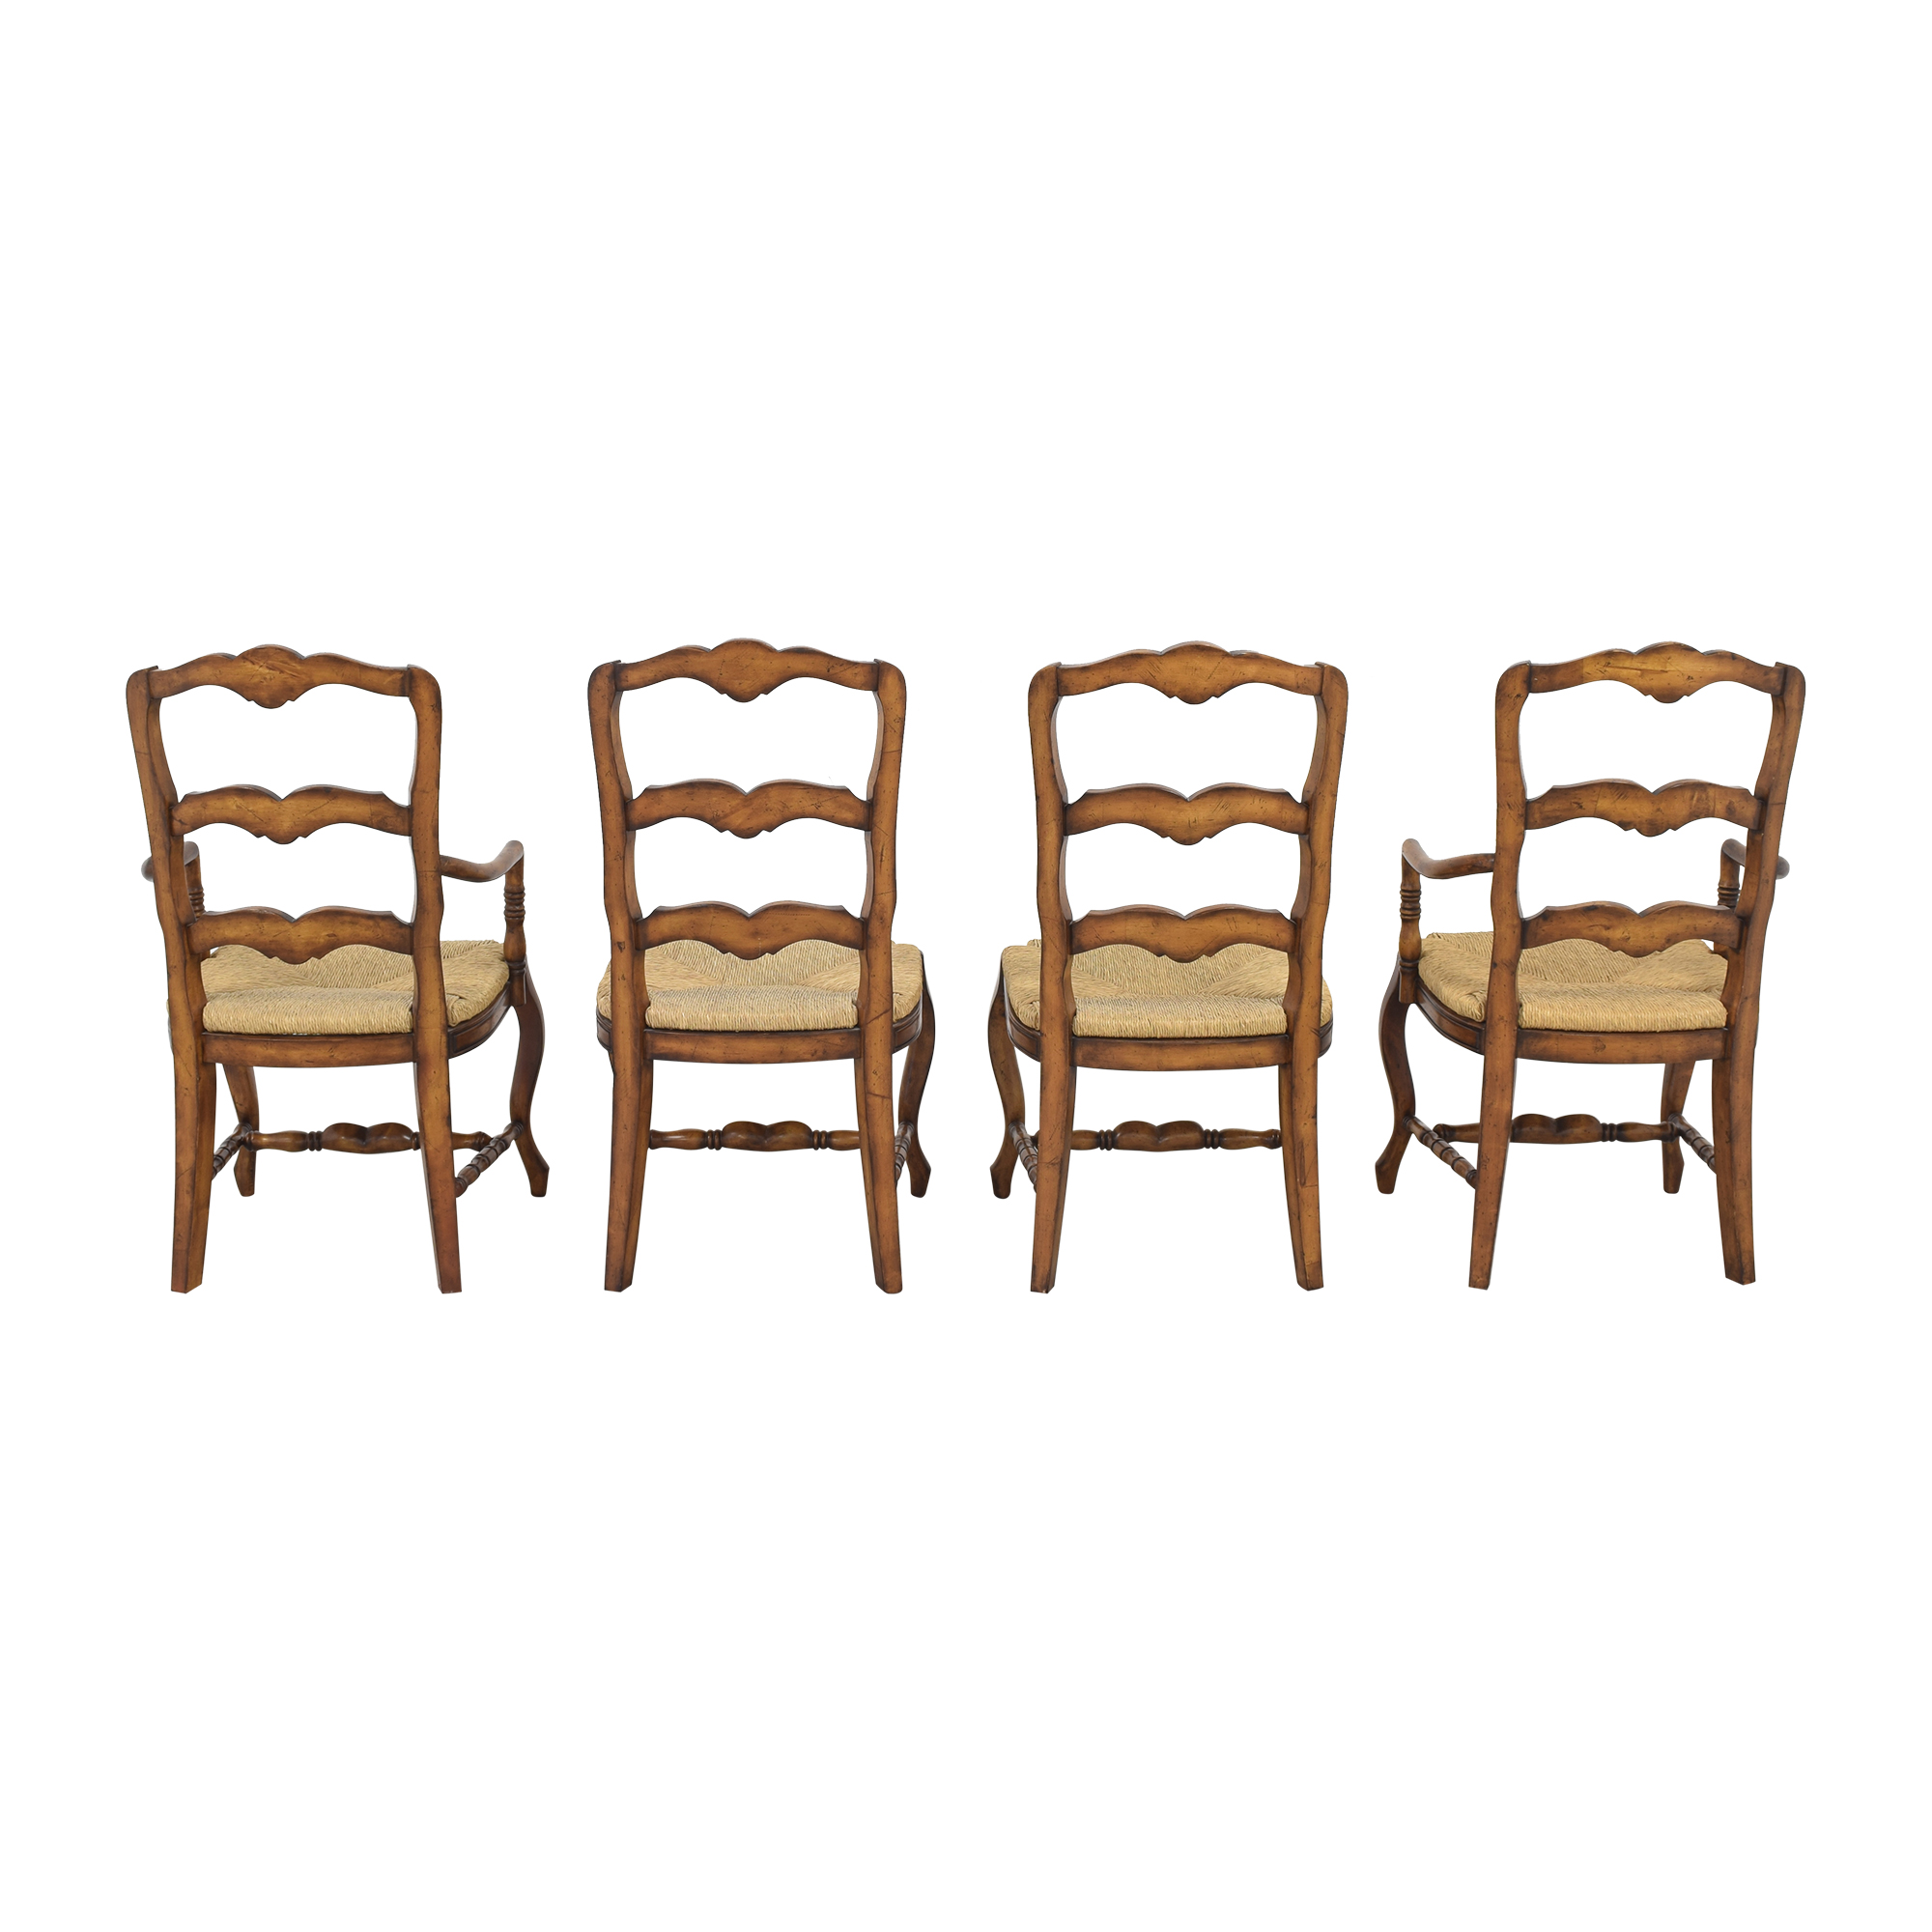 buy Artistica Cane Dining Chairs Artistica Chairs